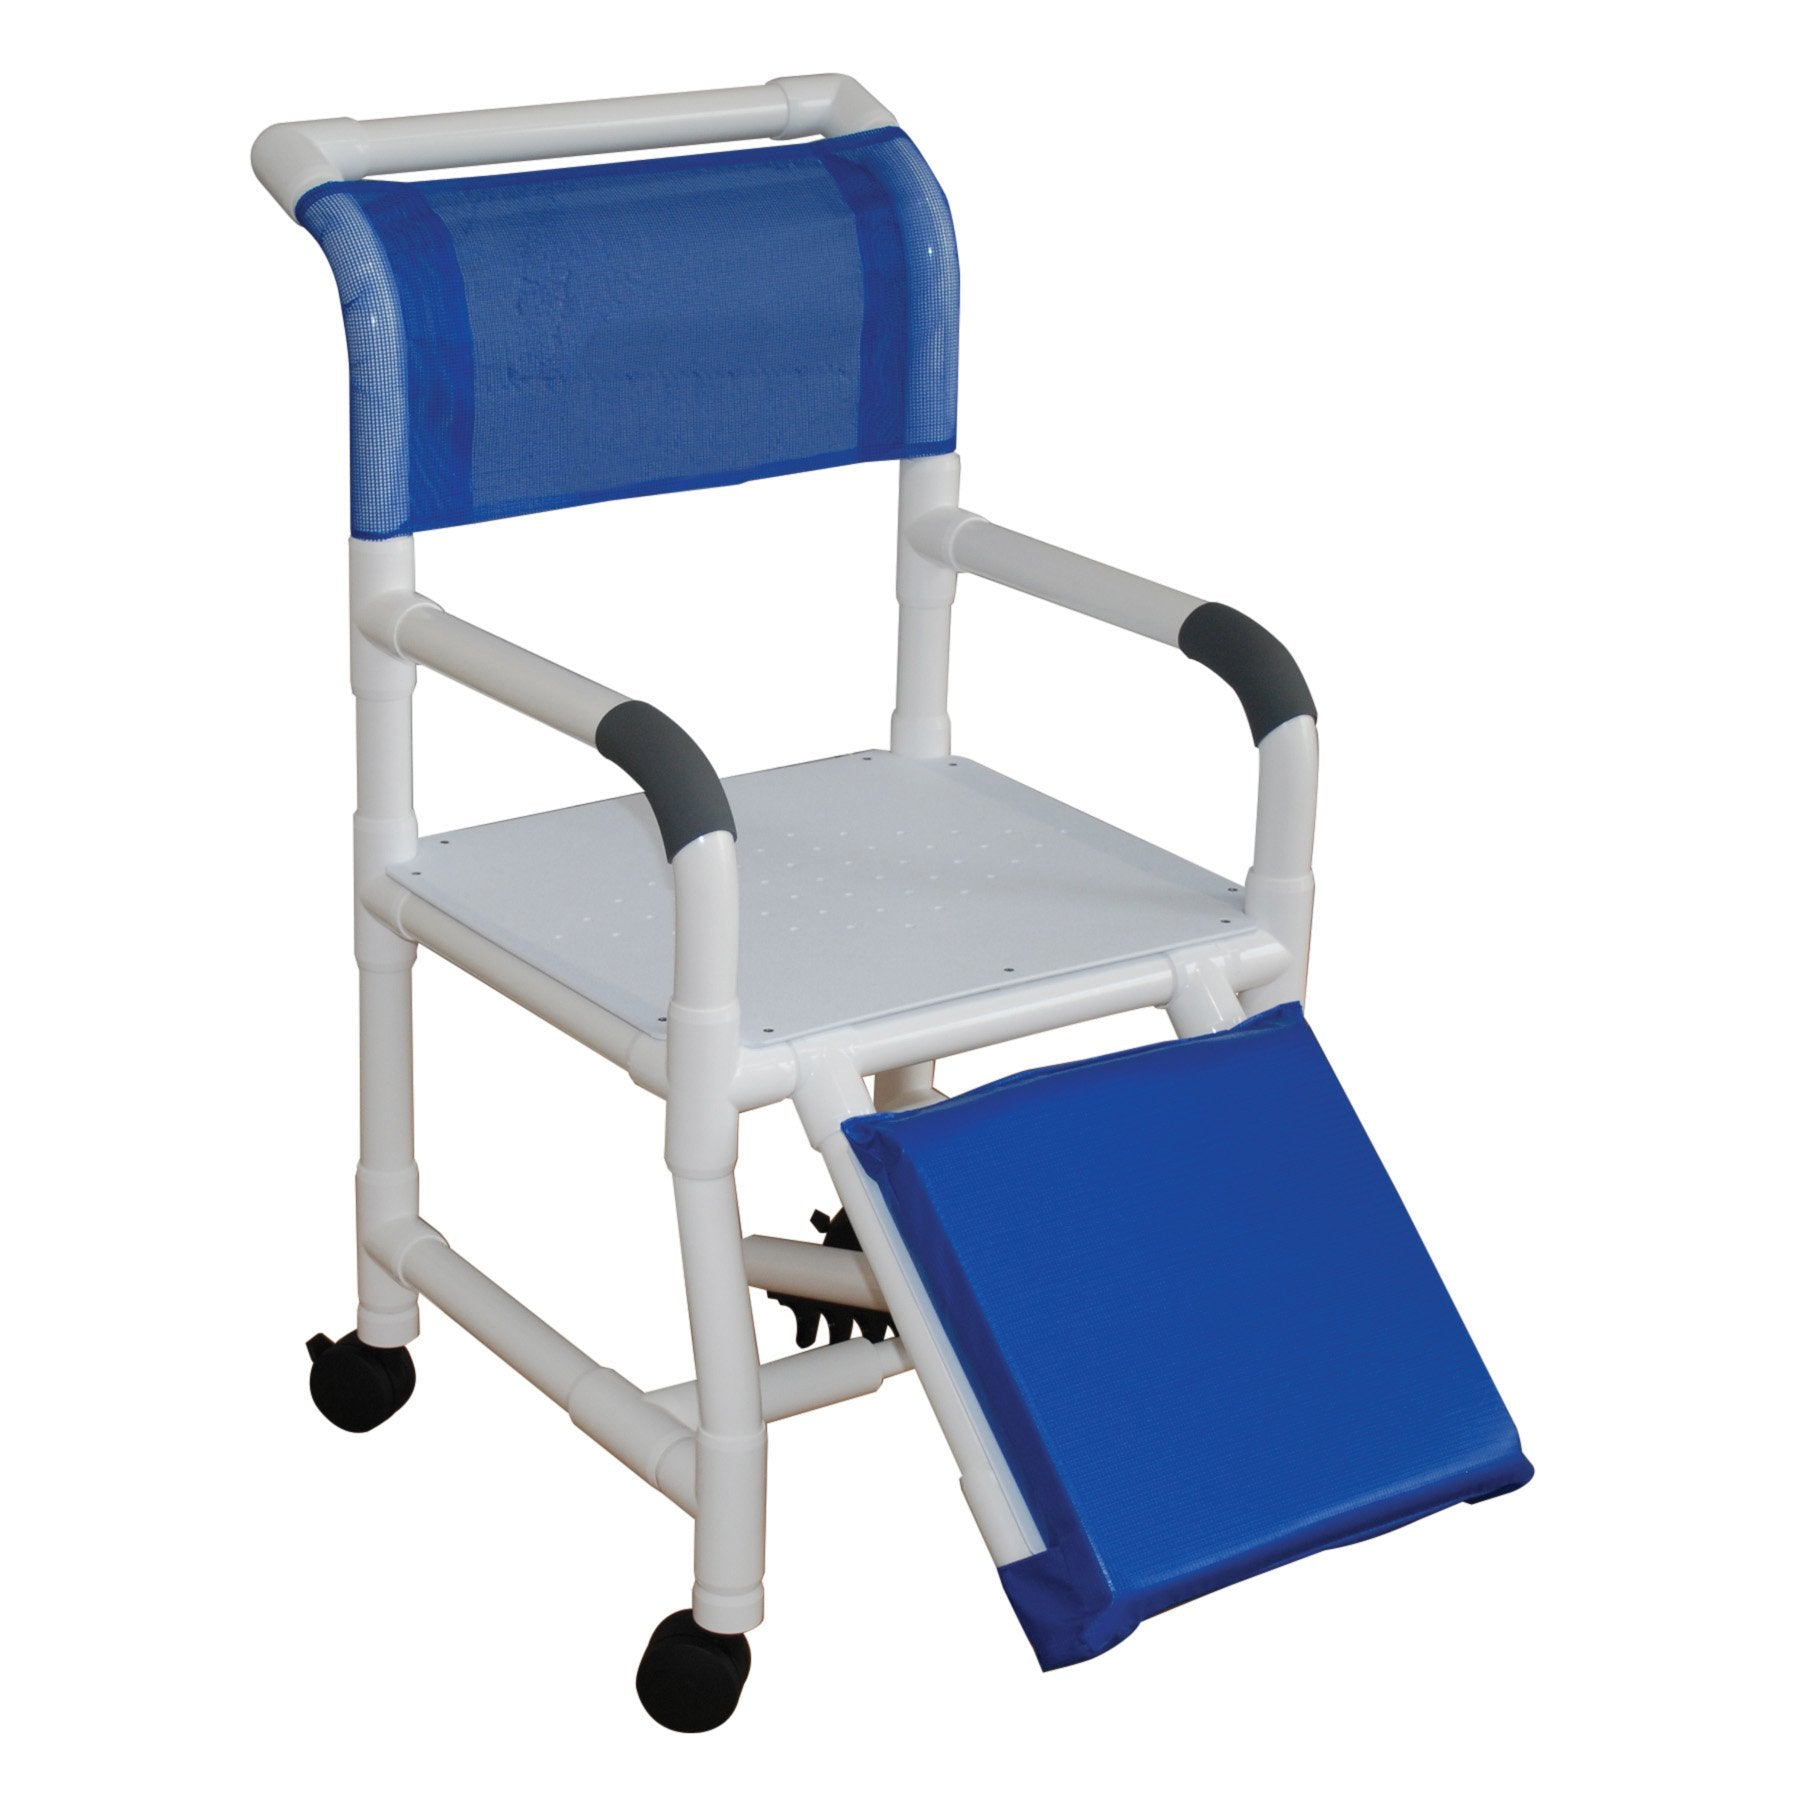 MJM International: Shower Chair With Flat Stock Seat For Uni-Lateral Or Bi-Lateral Below Knee Amputee - 118-3-AF